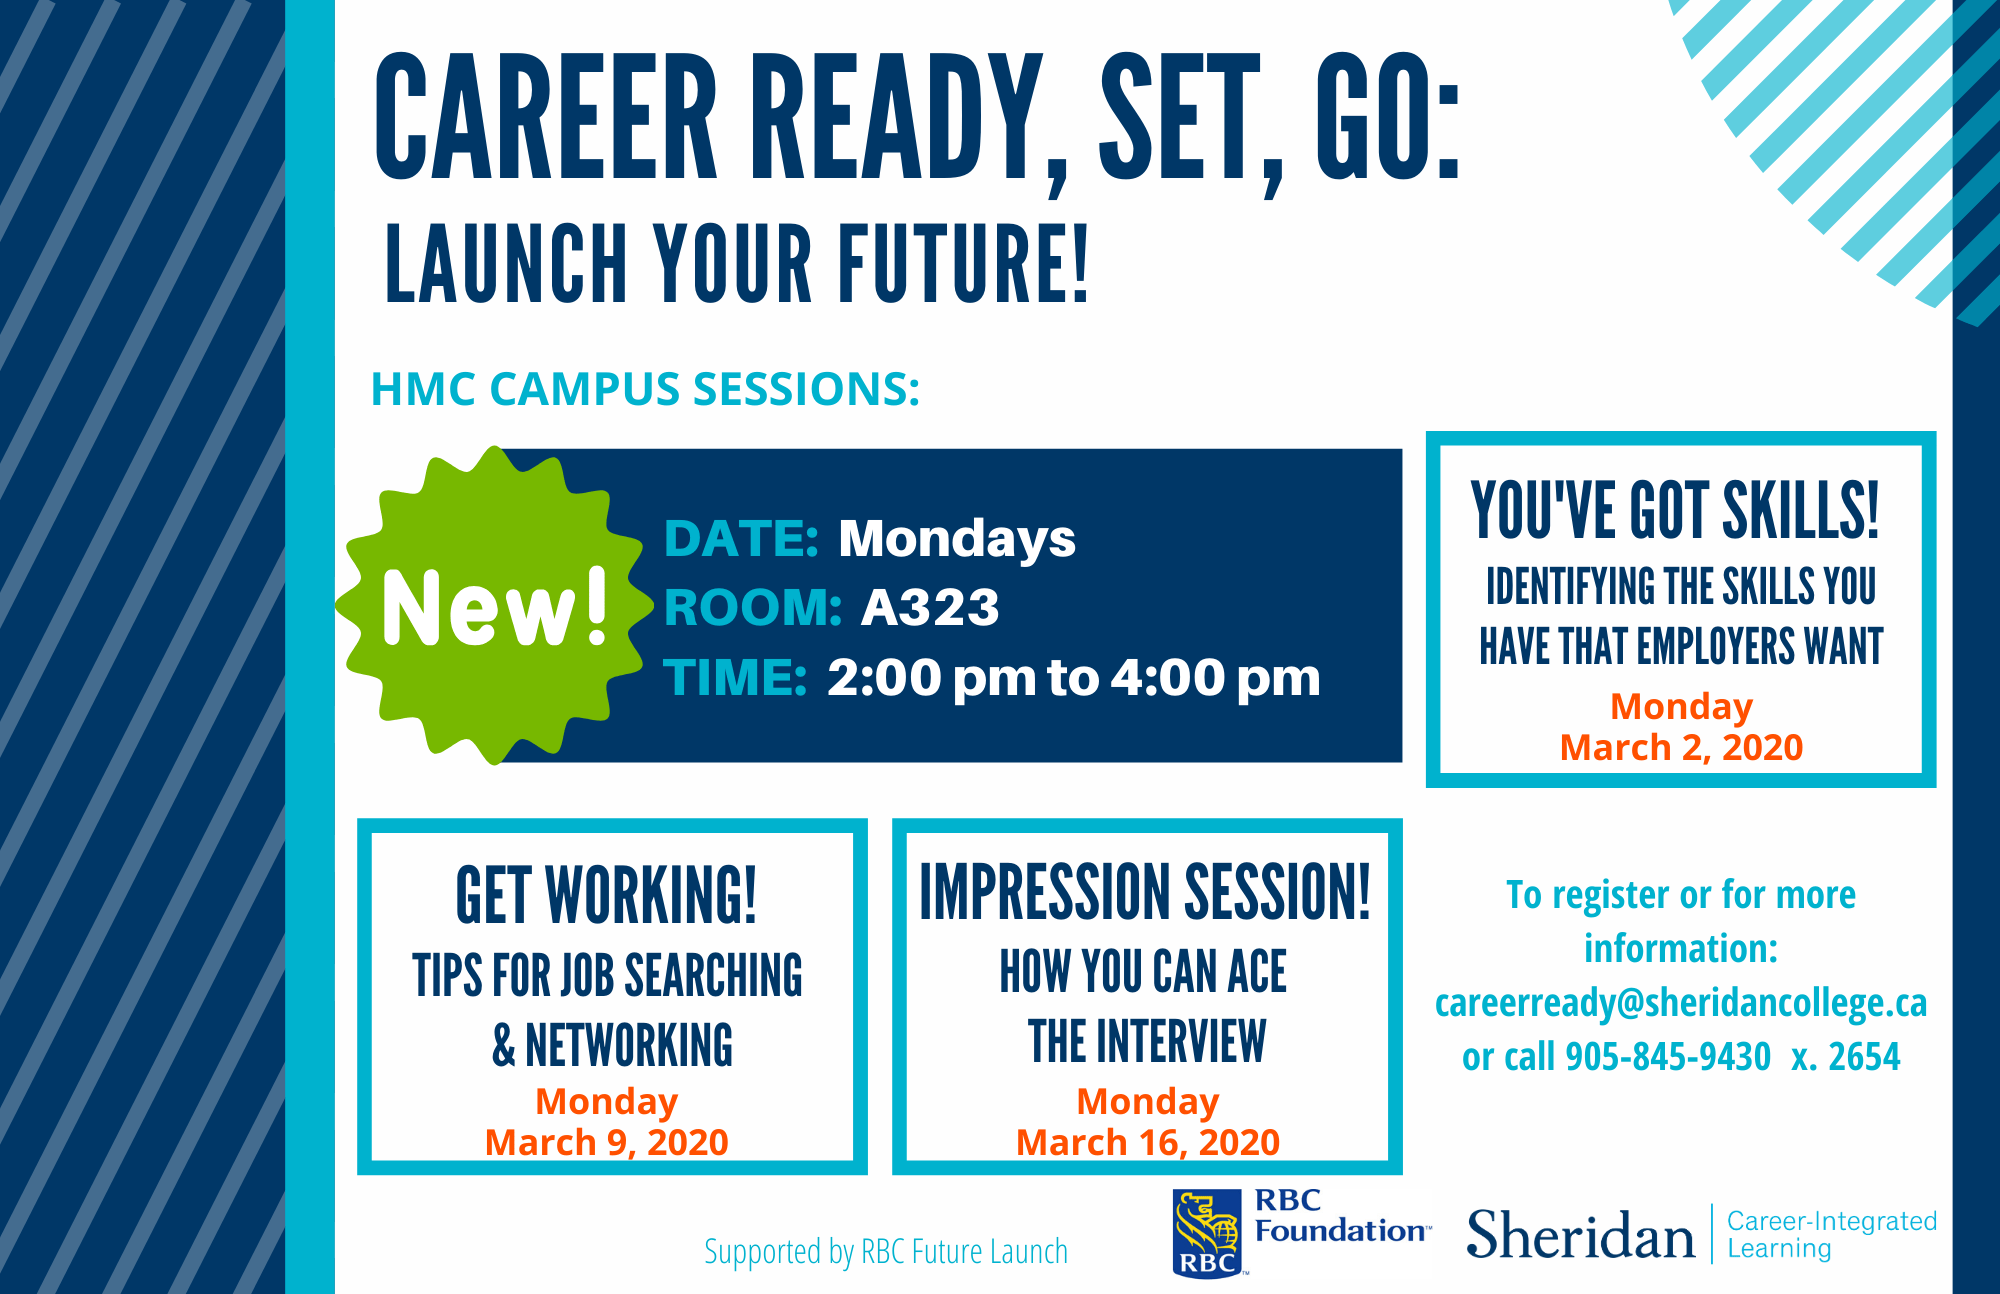 Career Ready Launch your Future Poster for HMC